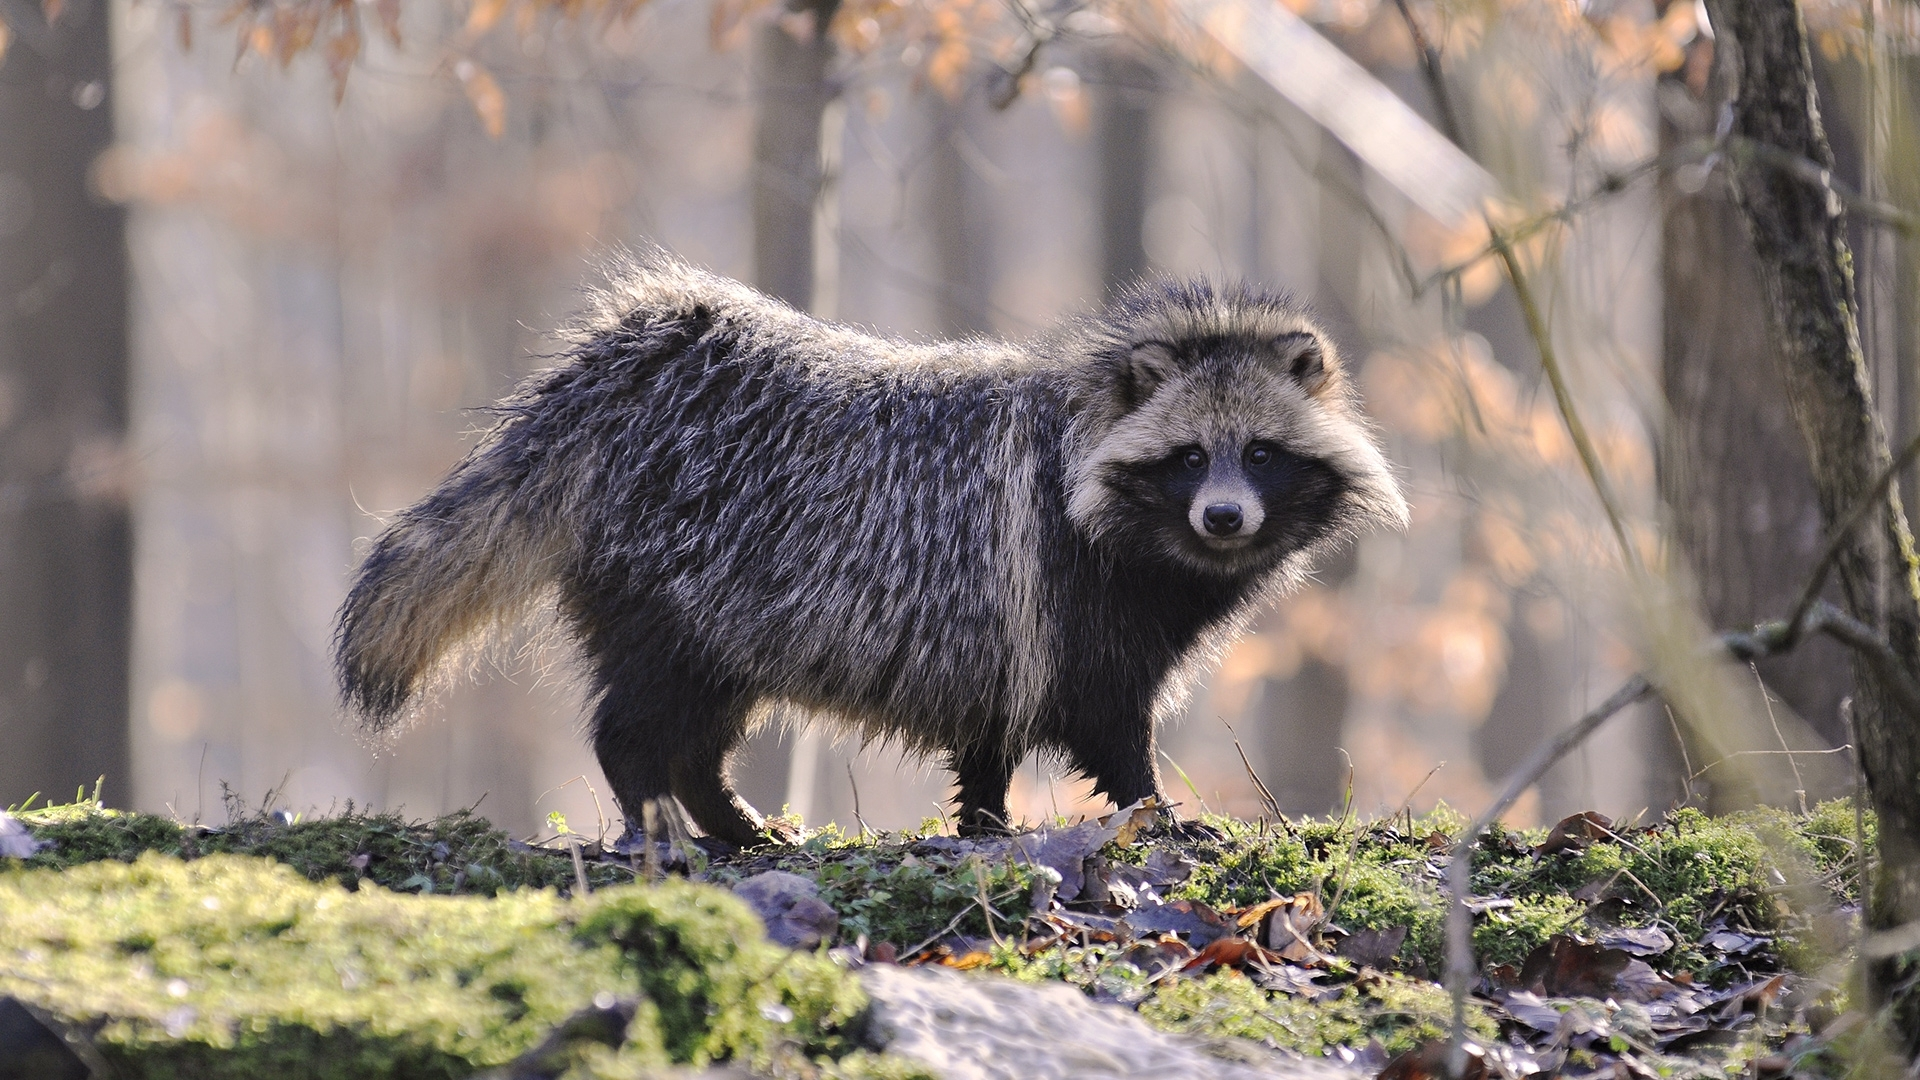 47599 download wallpaper Animals, Raccoons screensavers and pictures for free